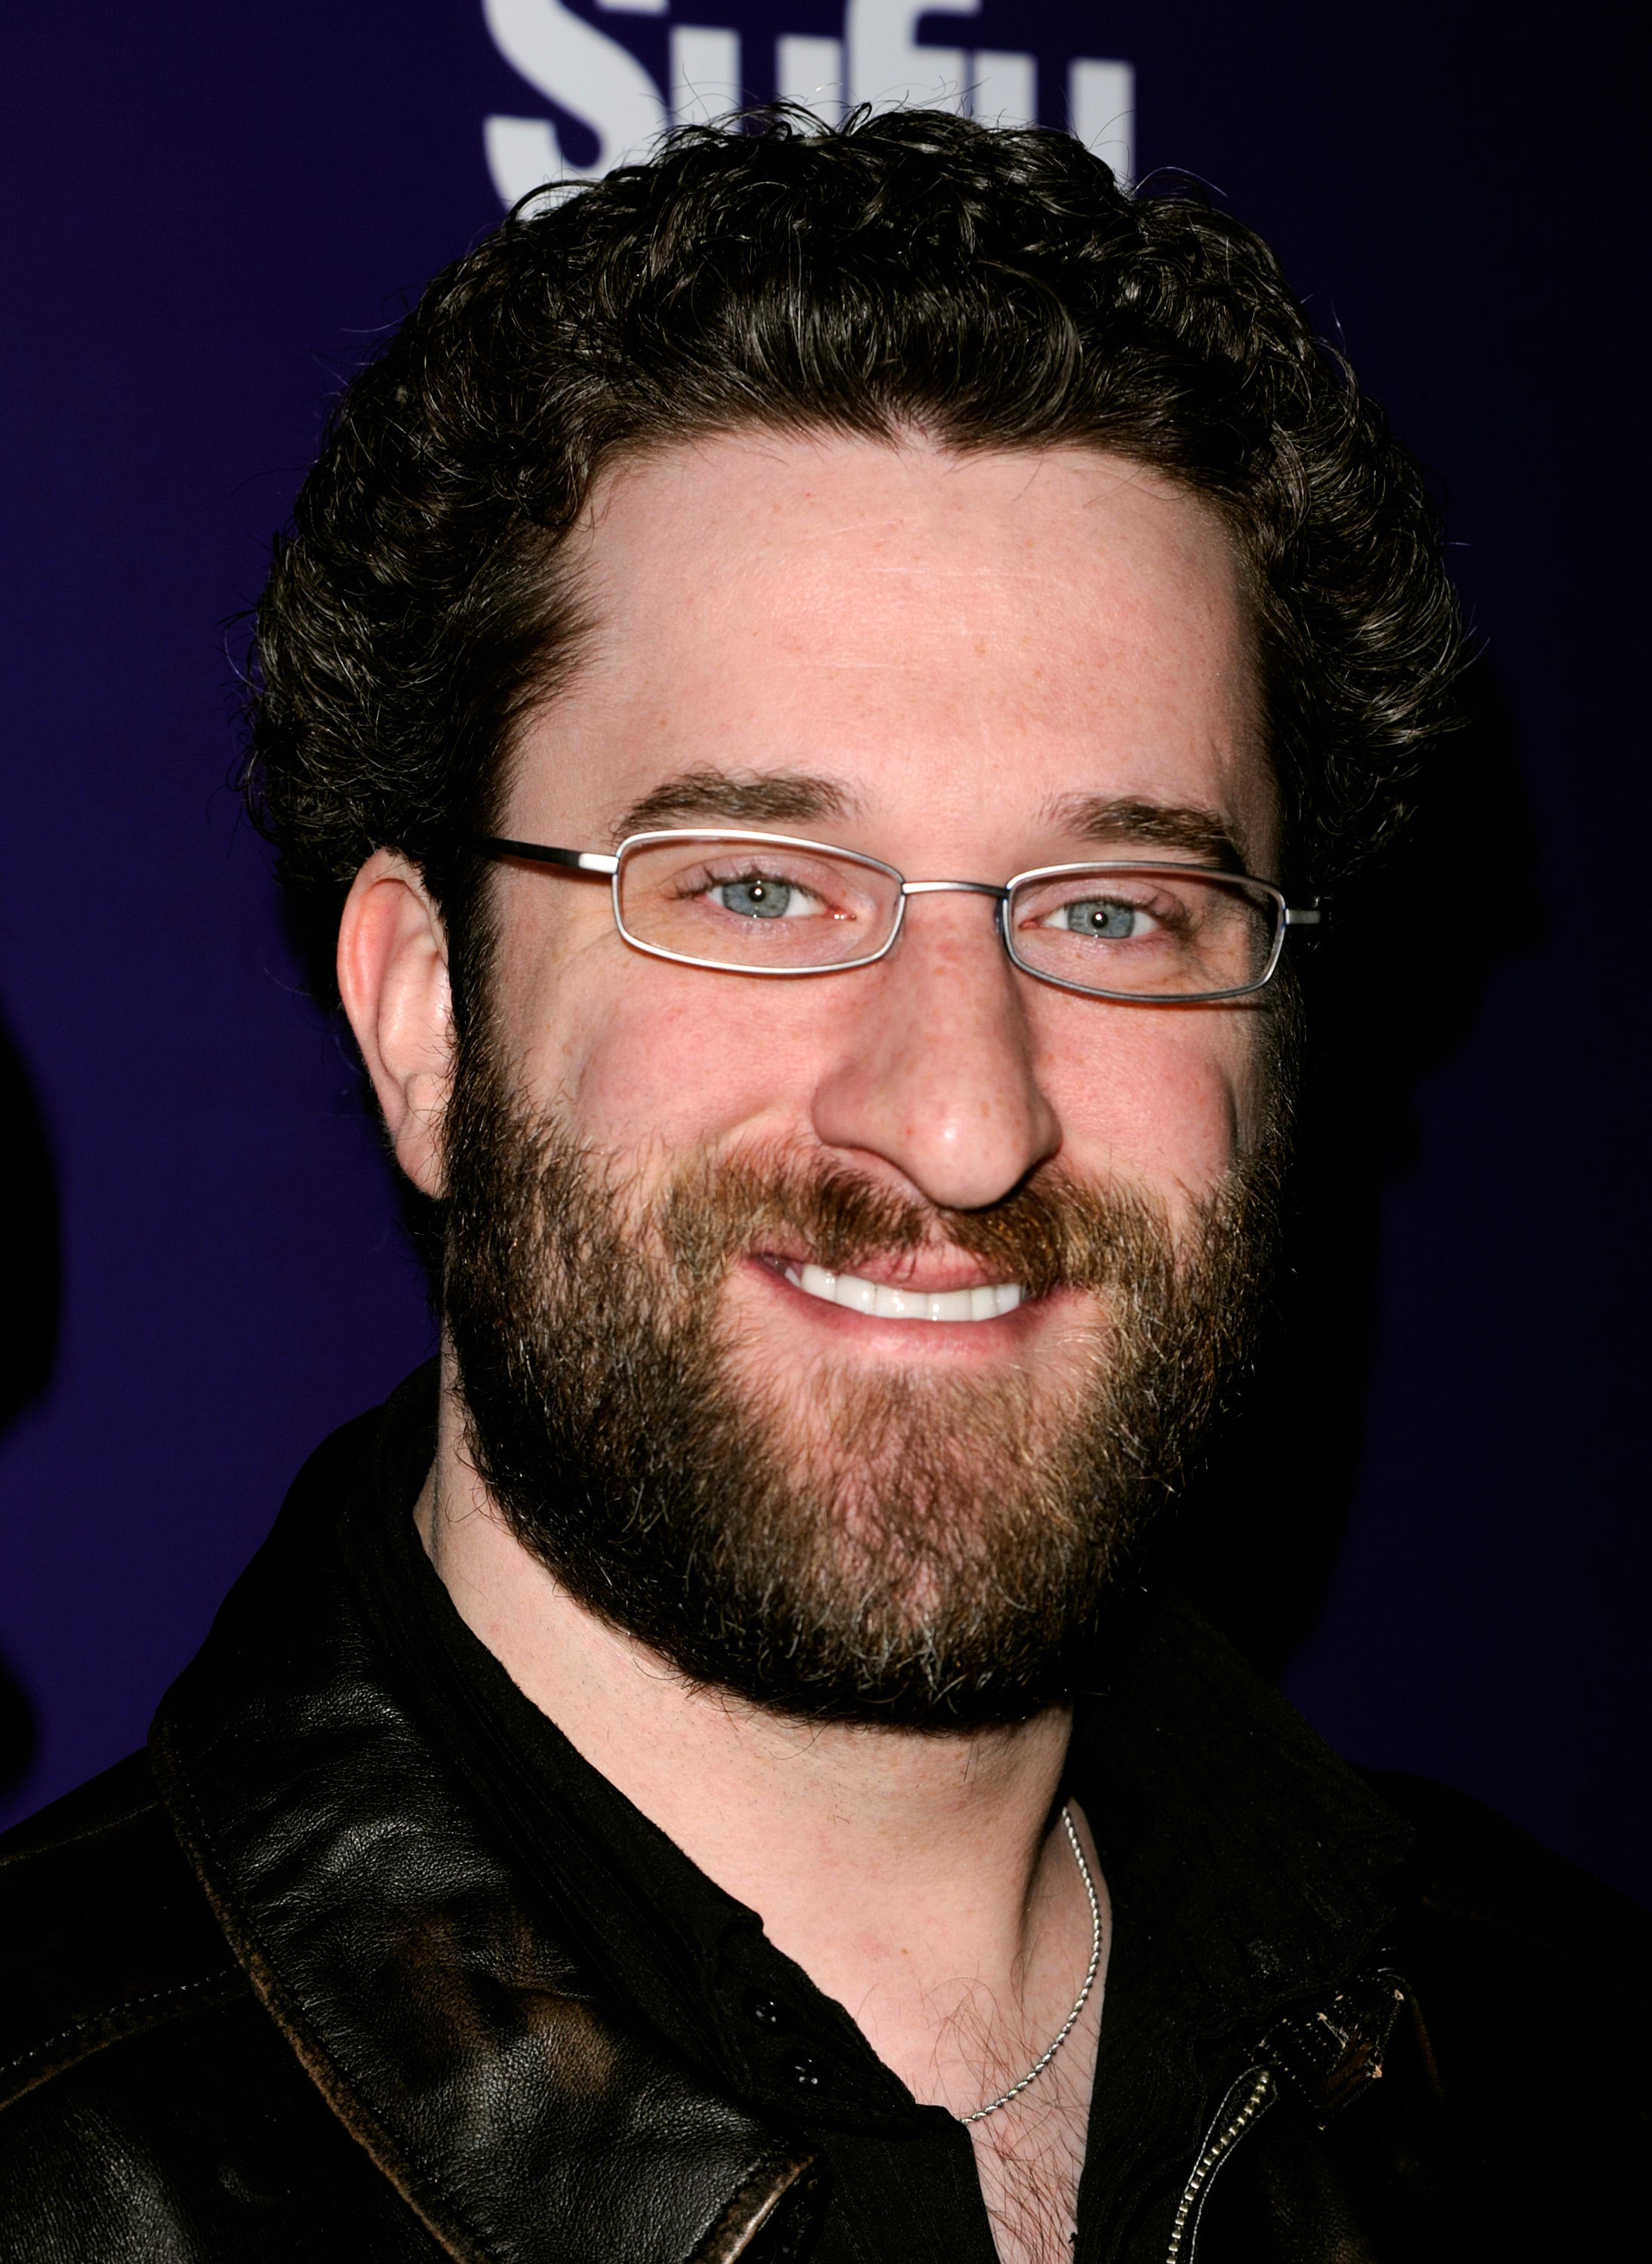 Saved by the Bell  alum Dustin Diamond has been diagnosed with cancer